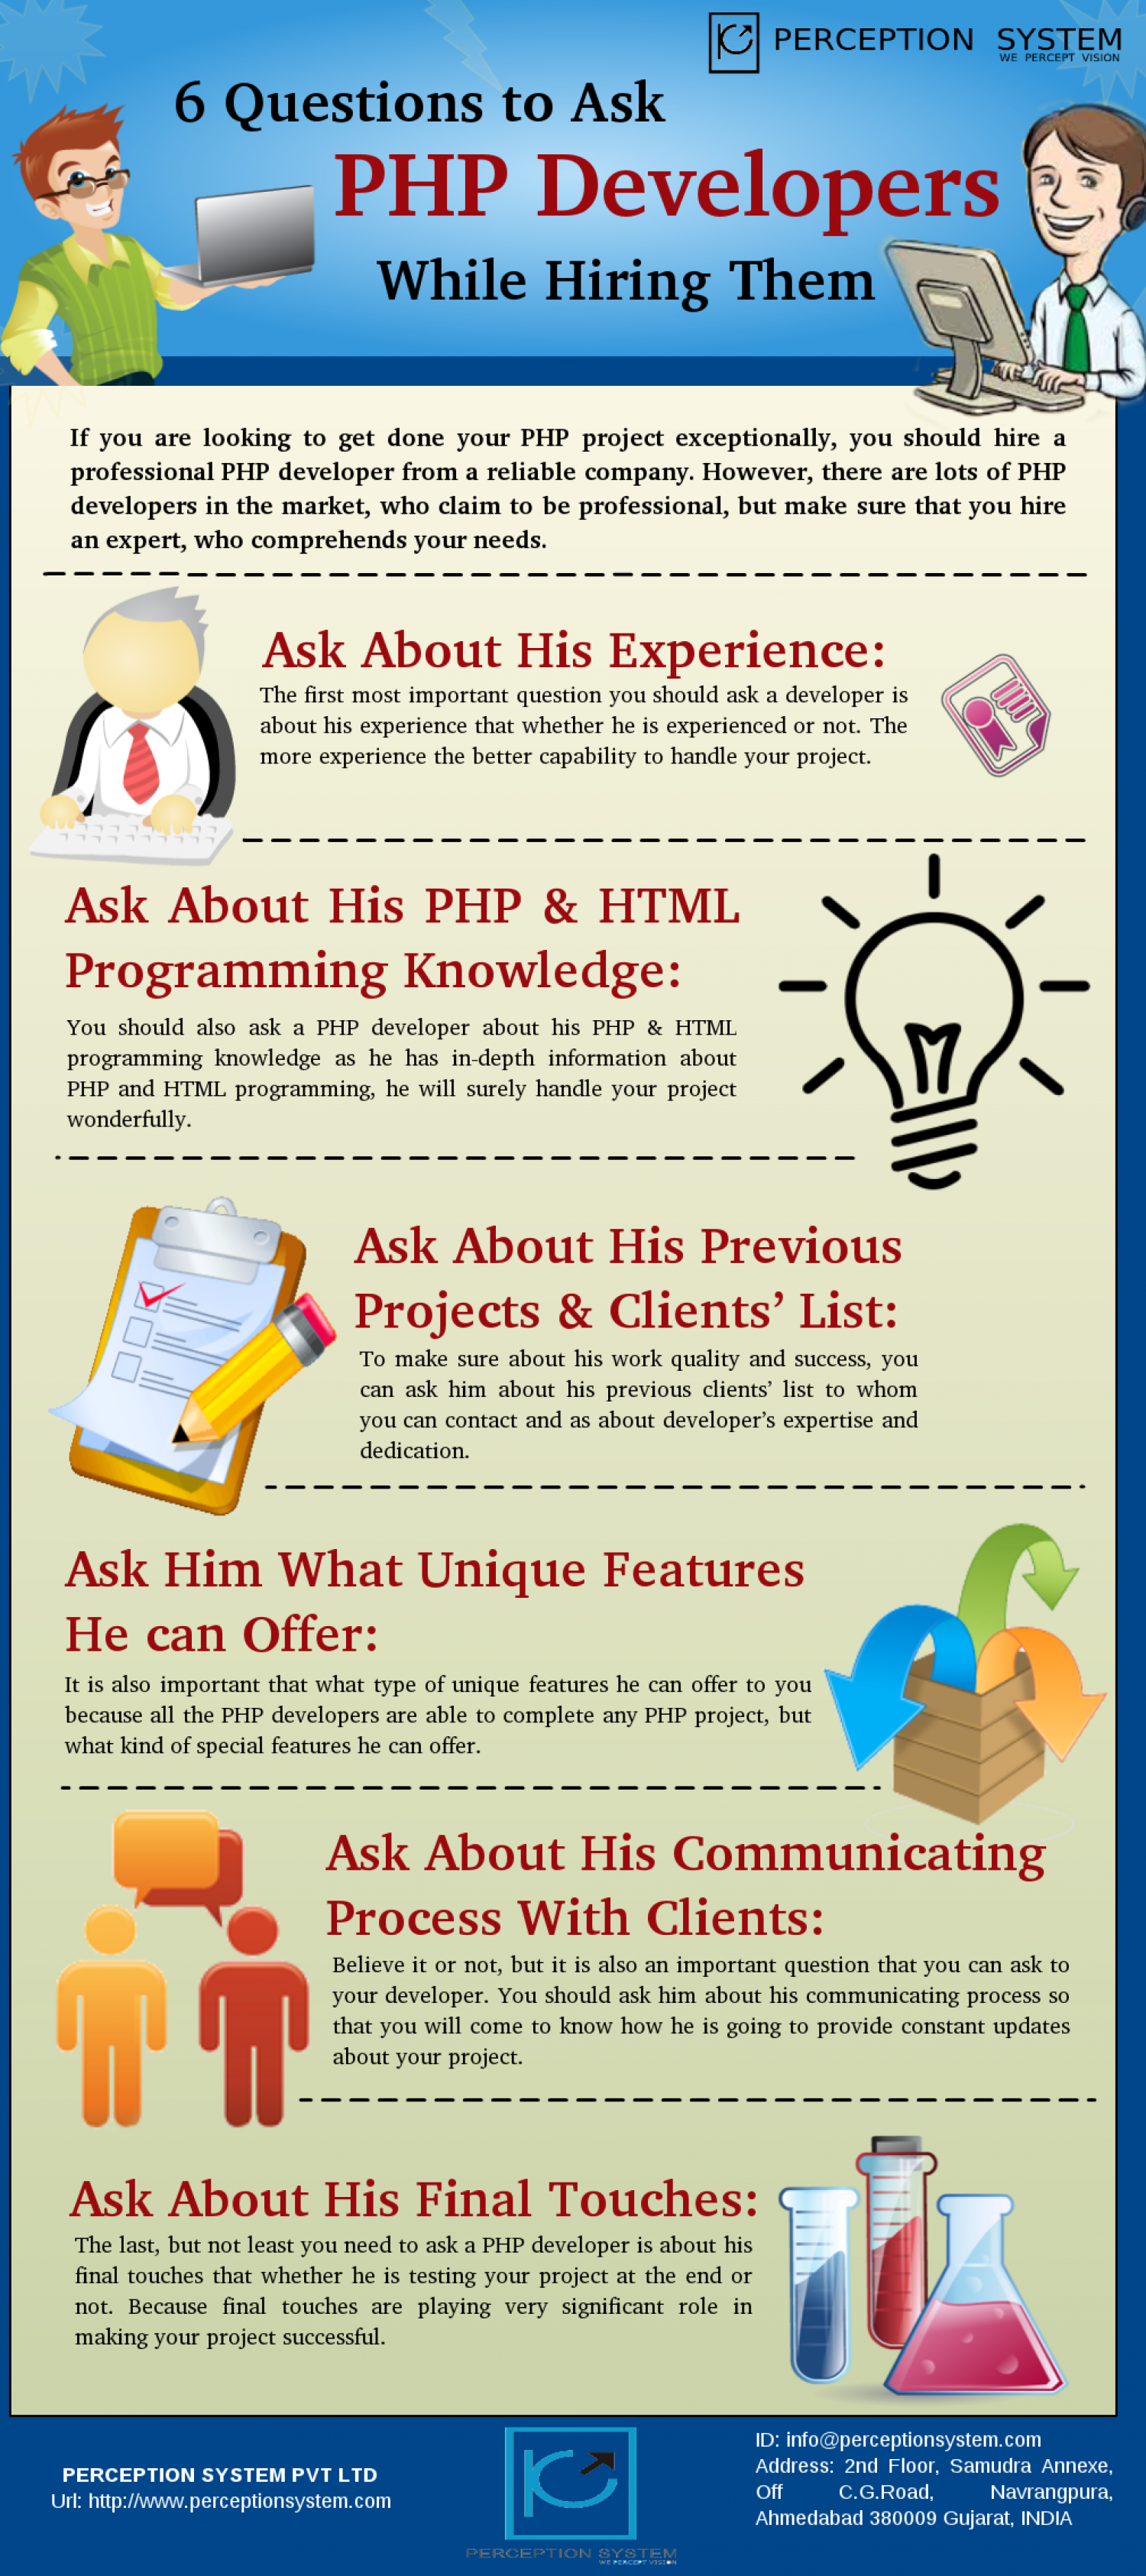 6 Questions to Ask PHP Developers While Hiring Them Infographic